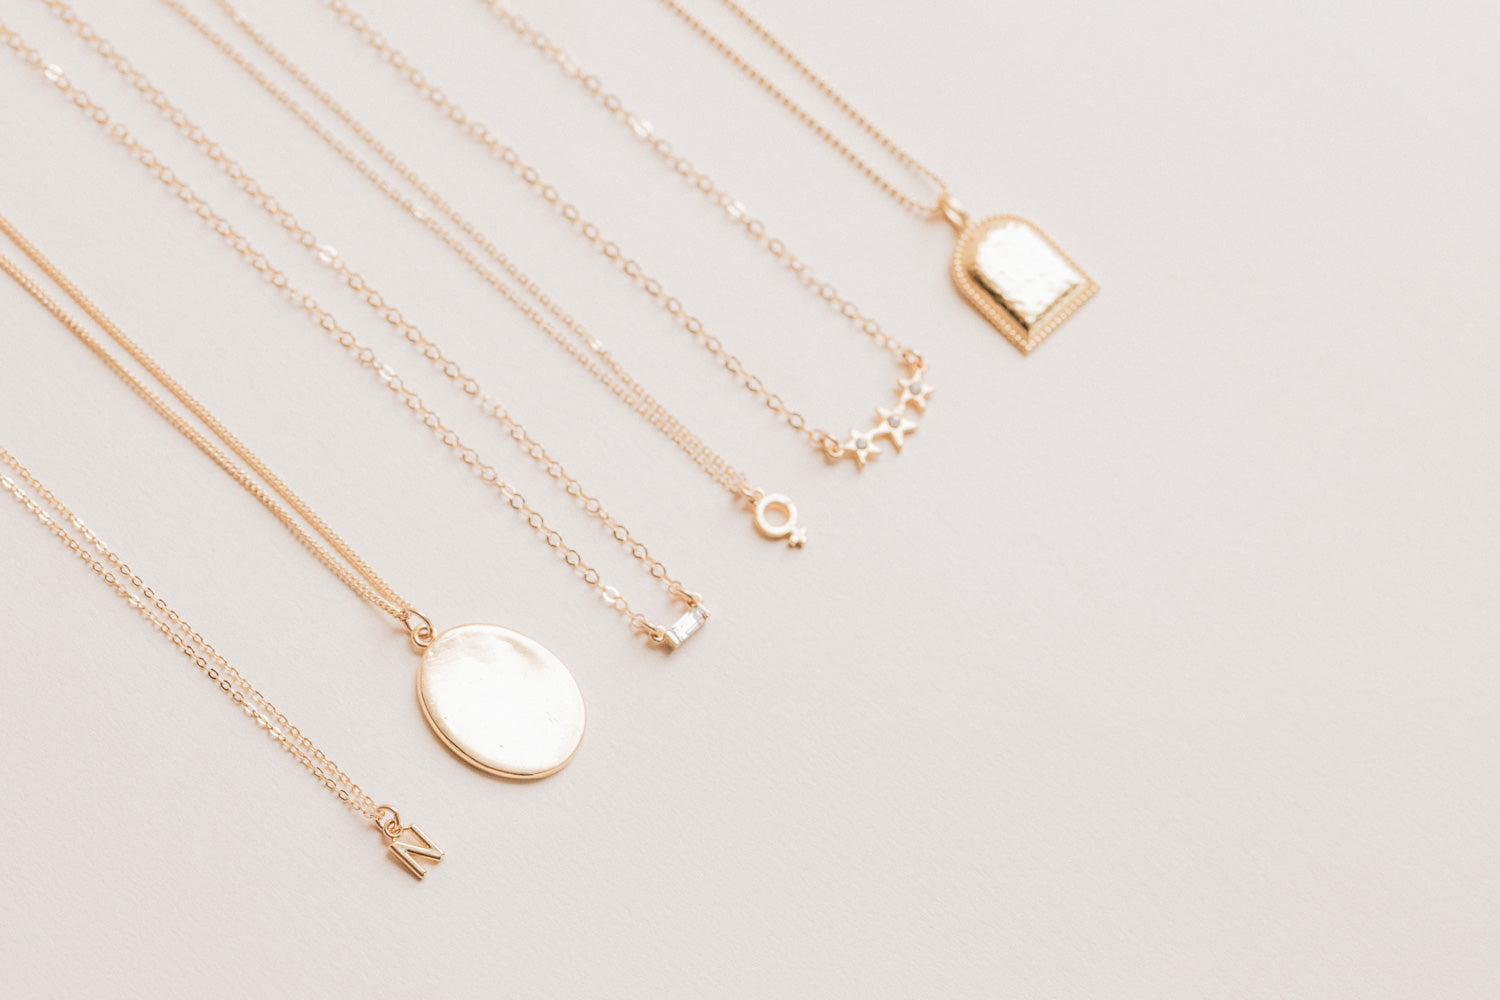 Dainty handmade Necklaces, Katie Dean Jewelry